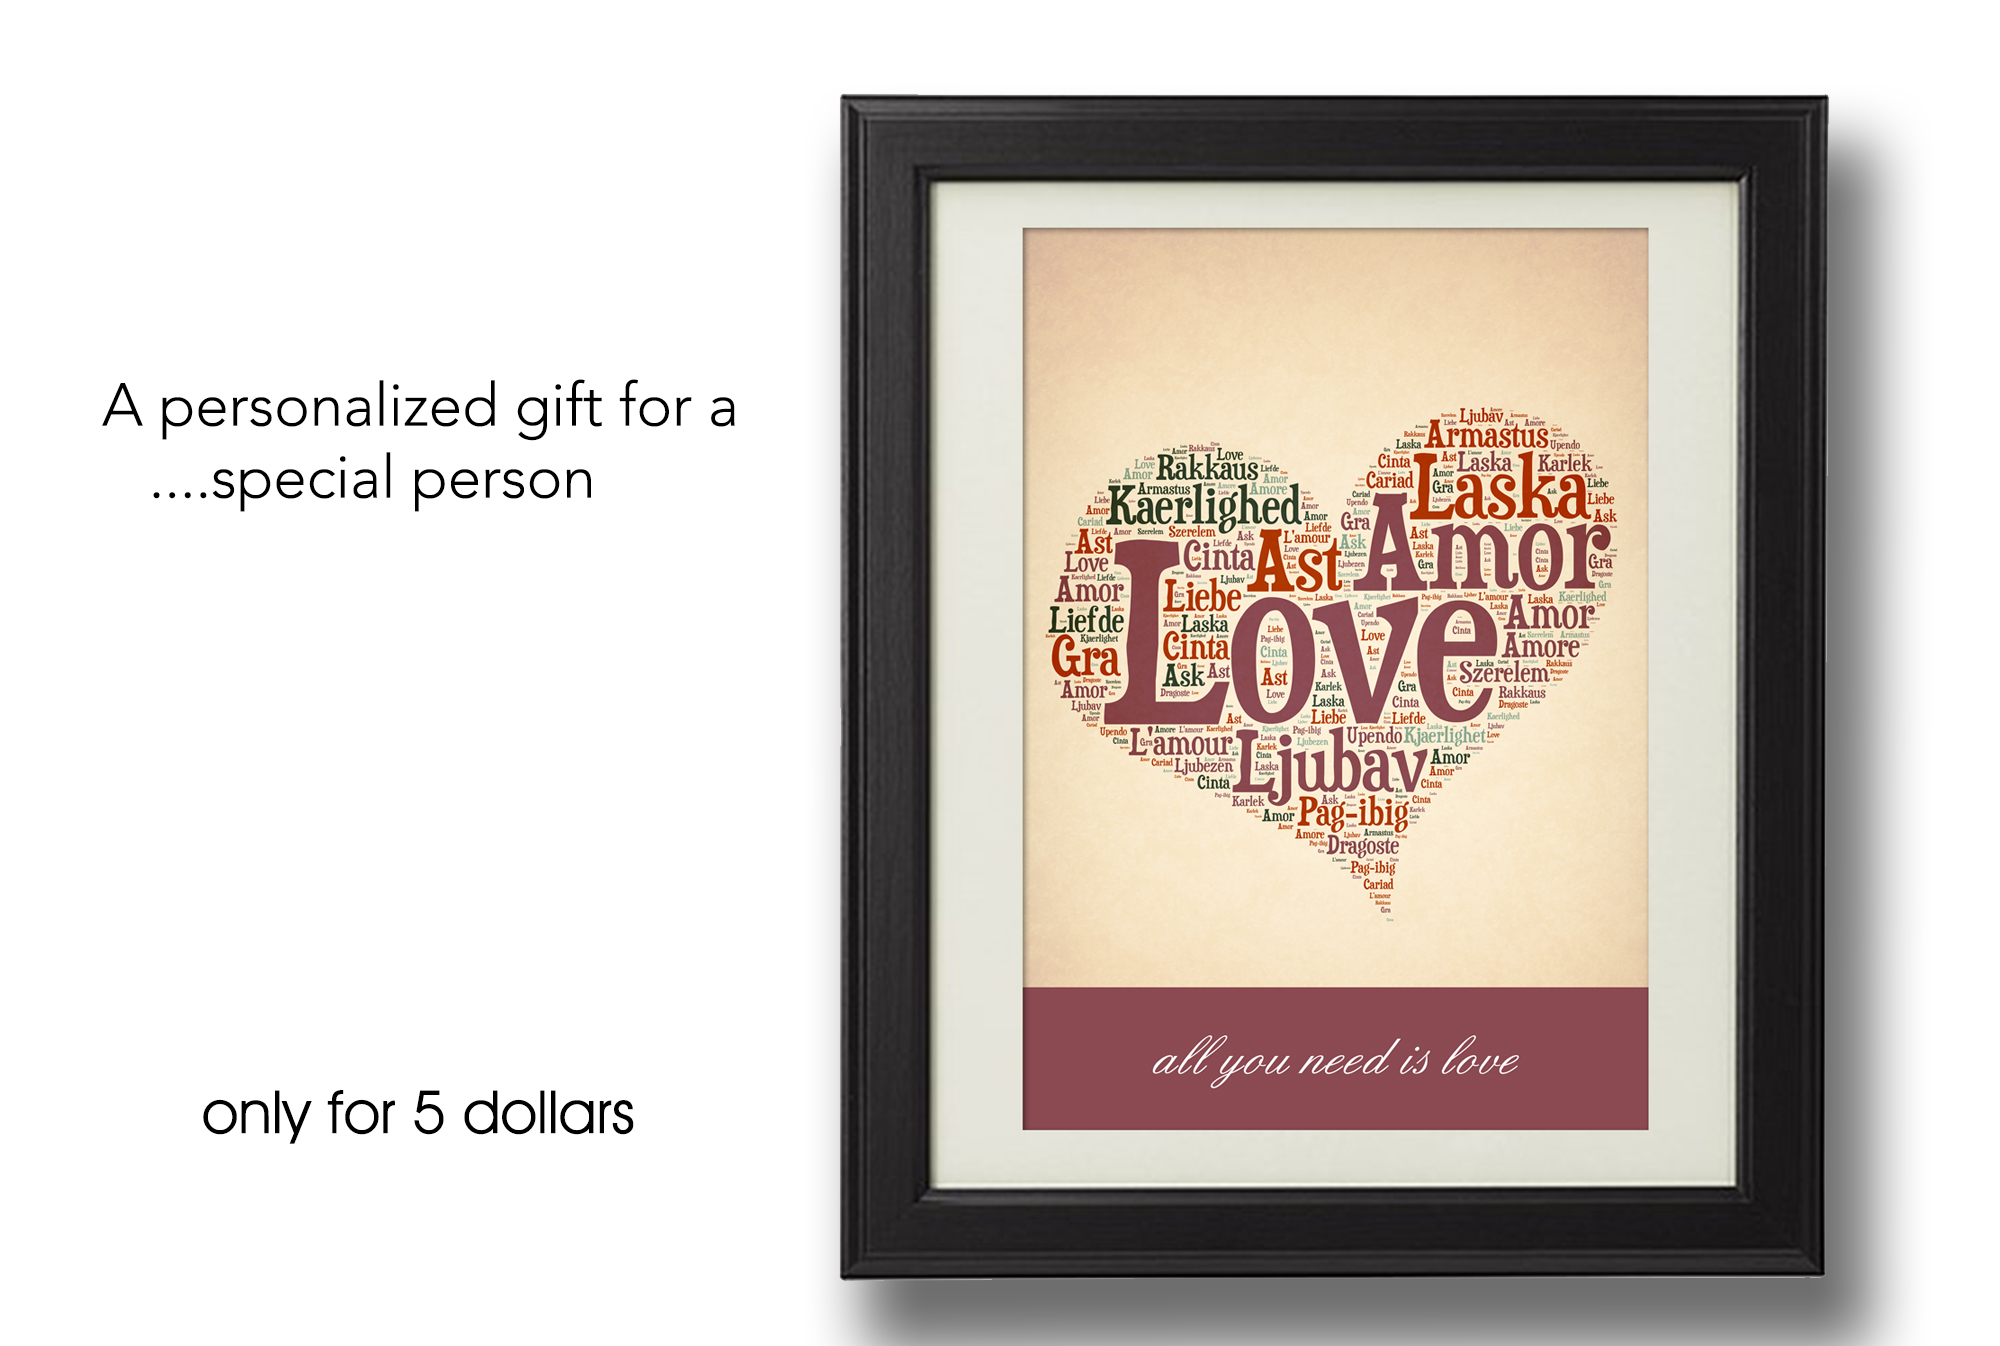 make a personalized gift for a special person